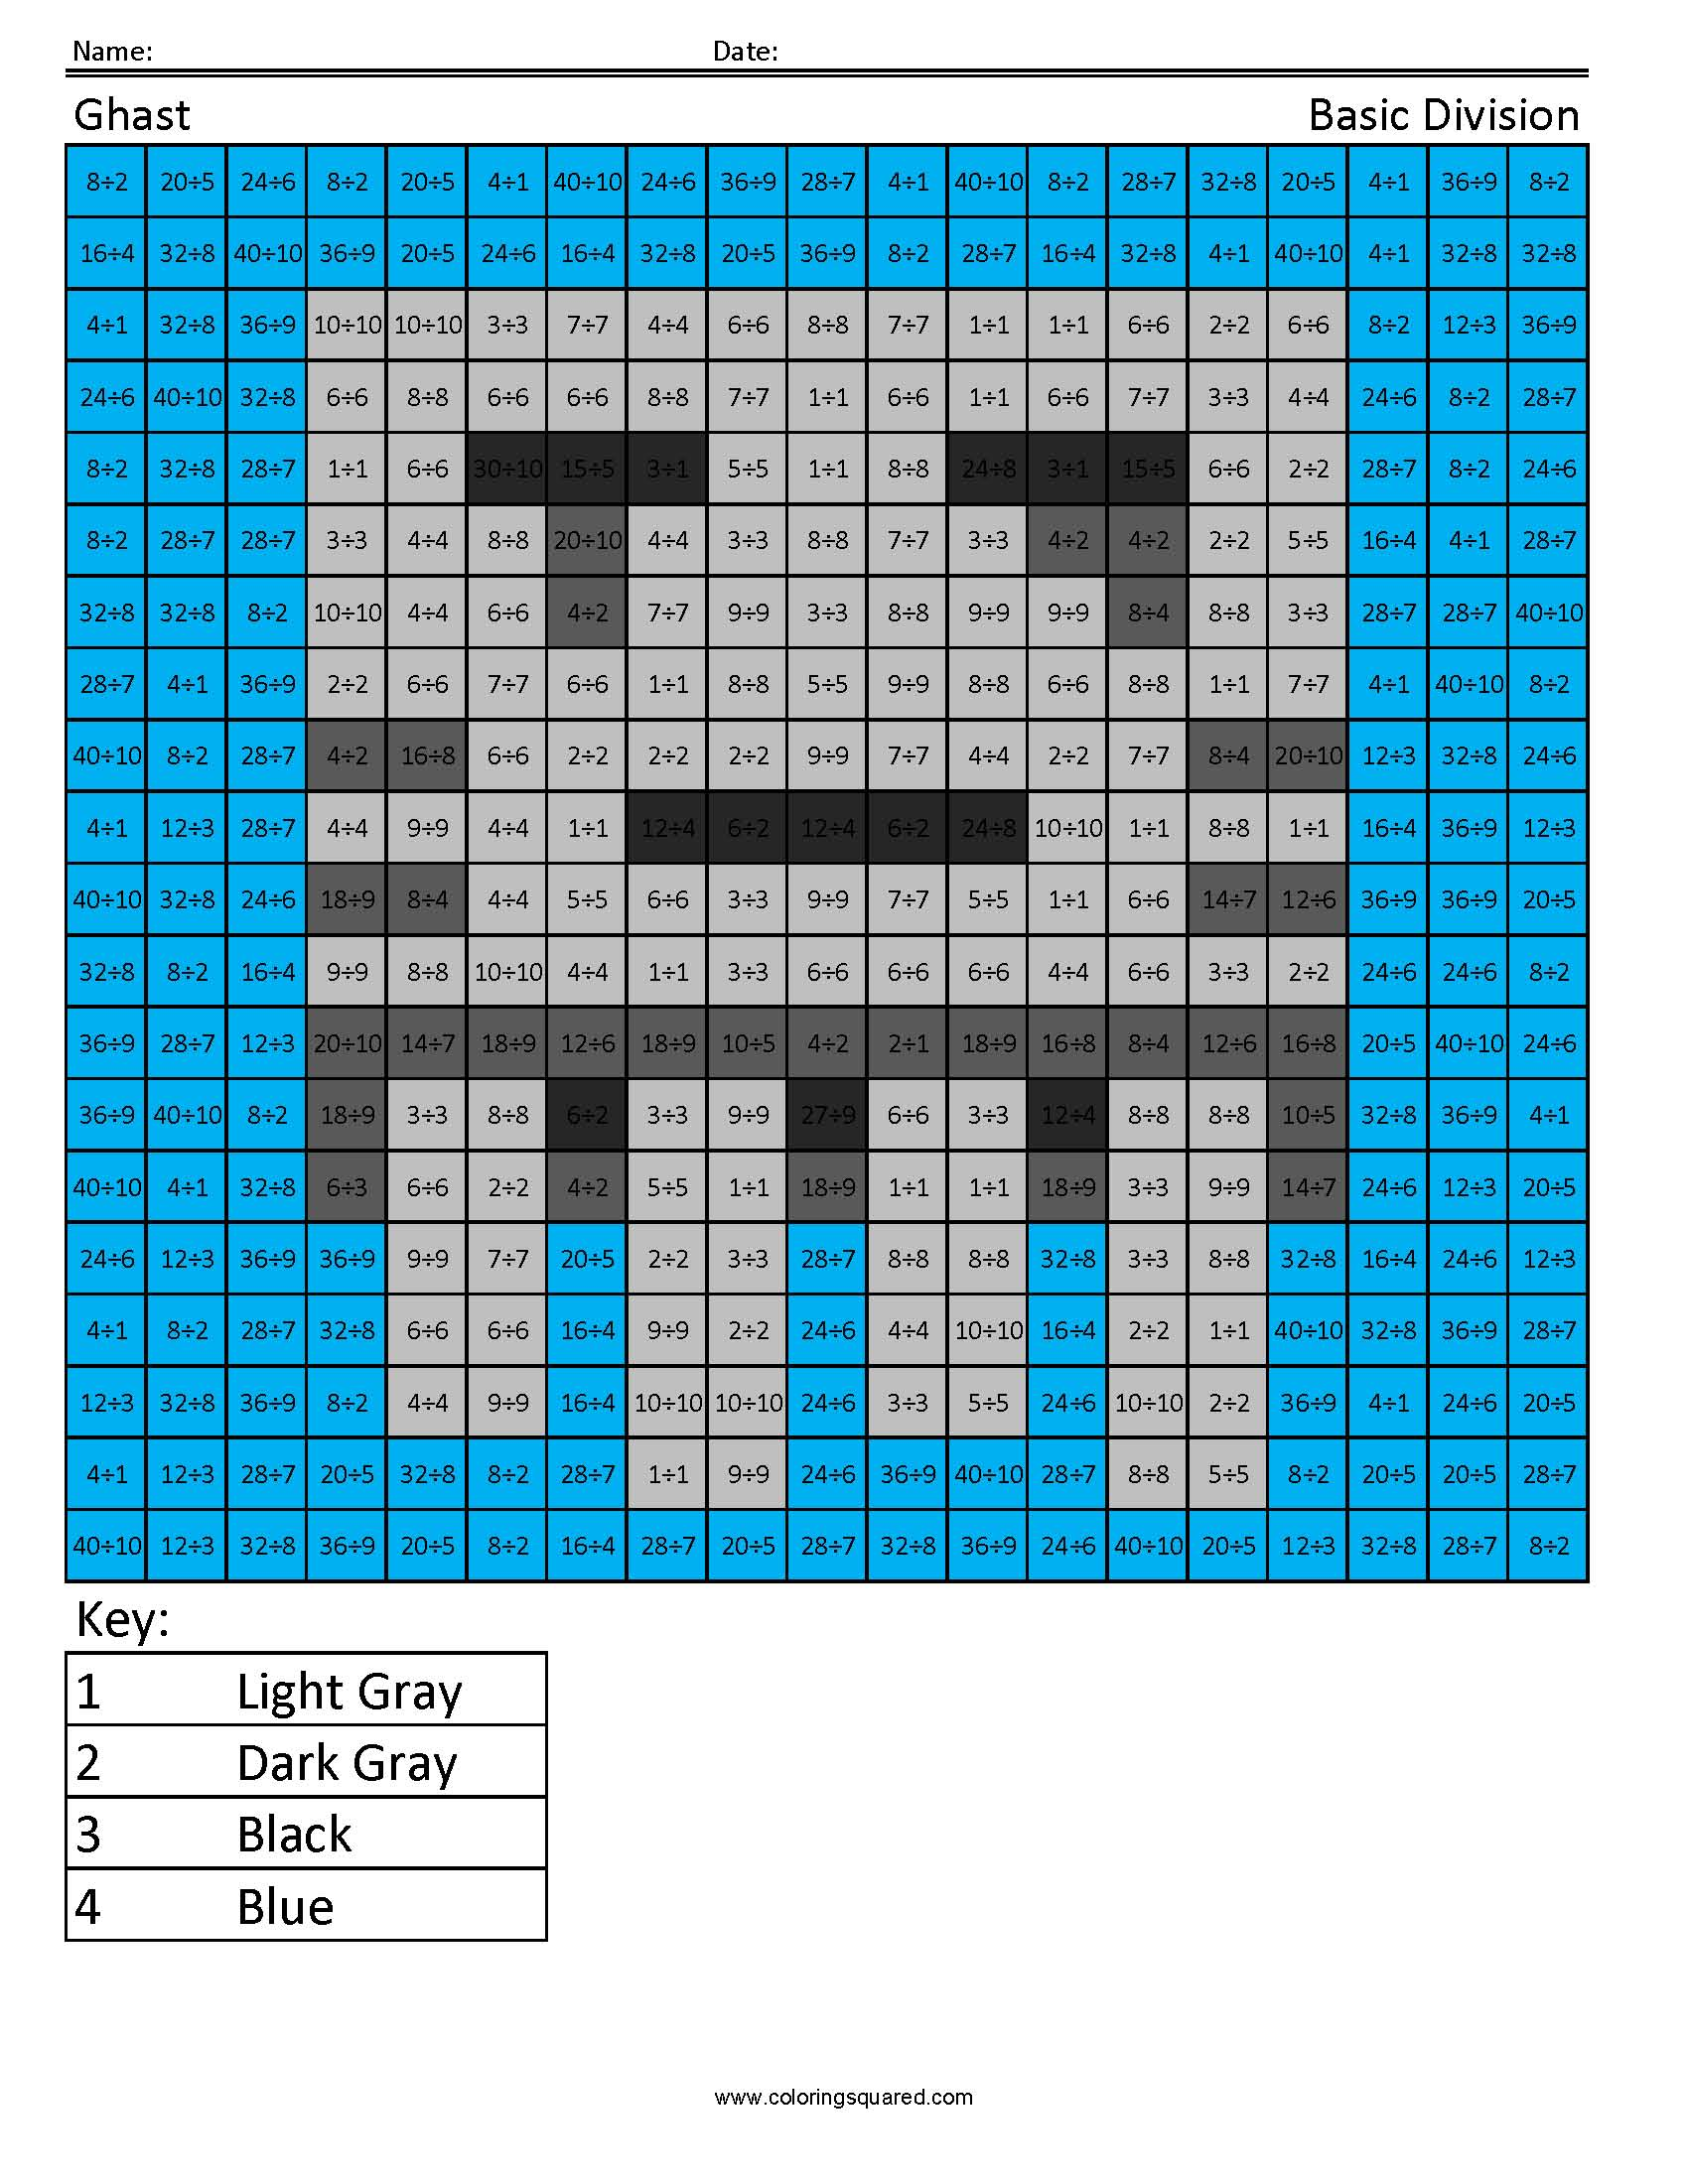 Ghast- Basic Division - Coloring Squared